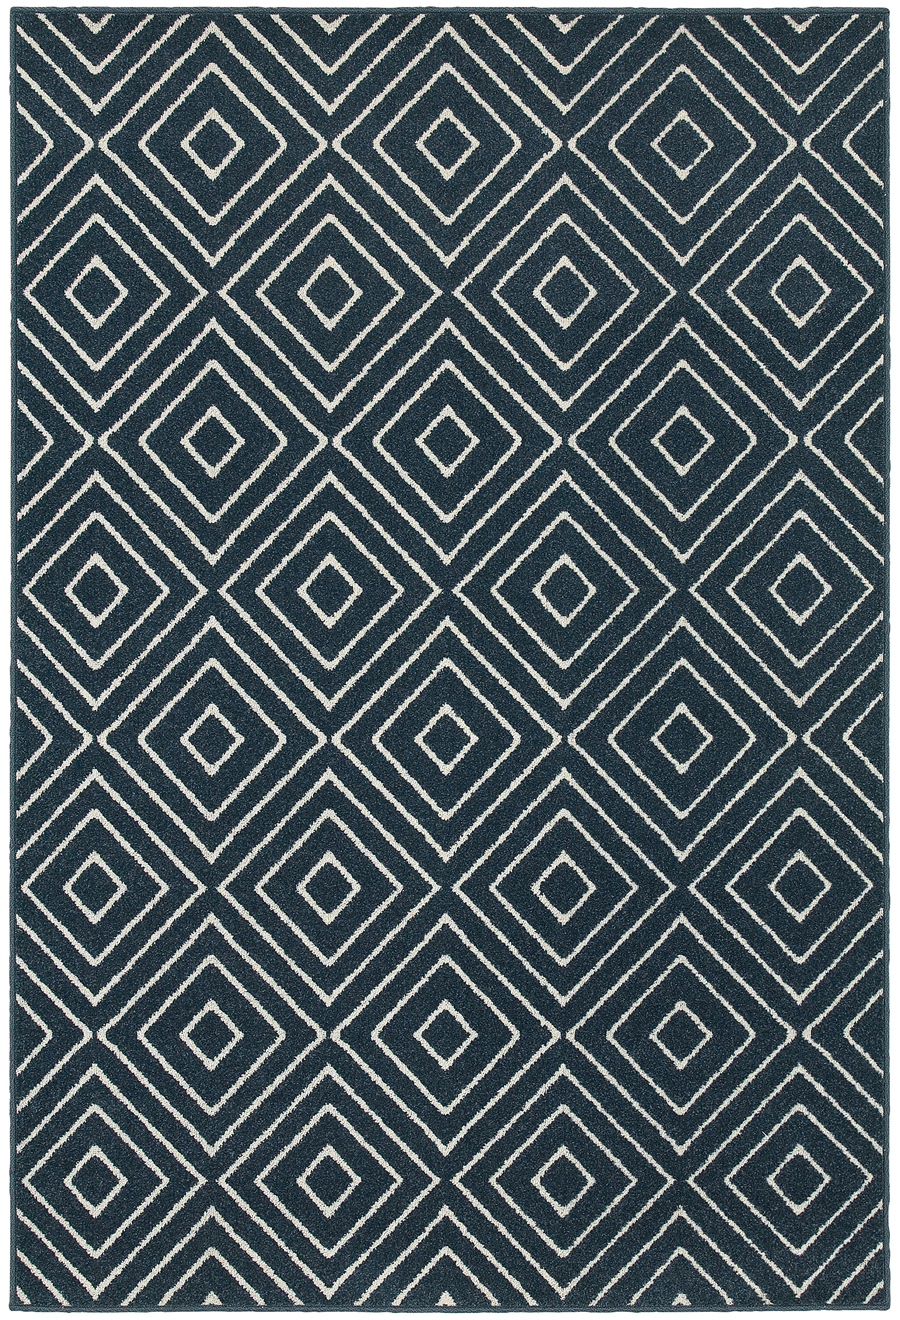 Oriental Weavers Sphinx Hampton 2332B Rug